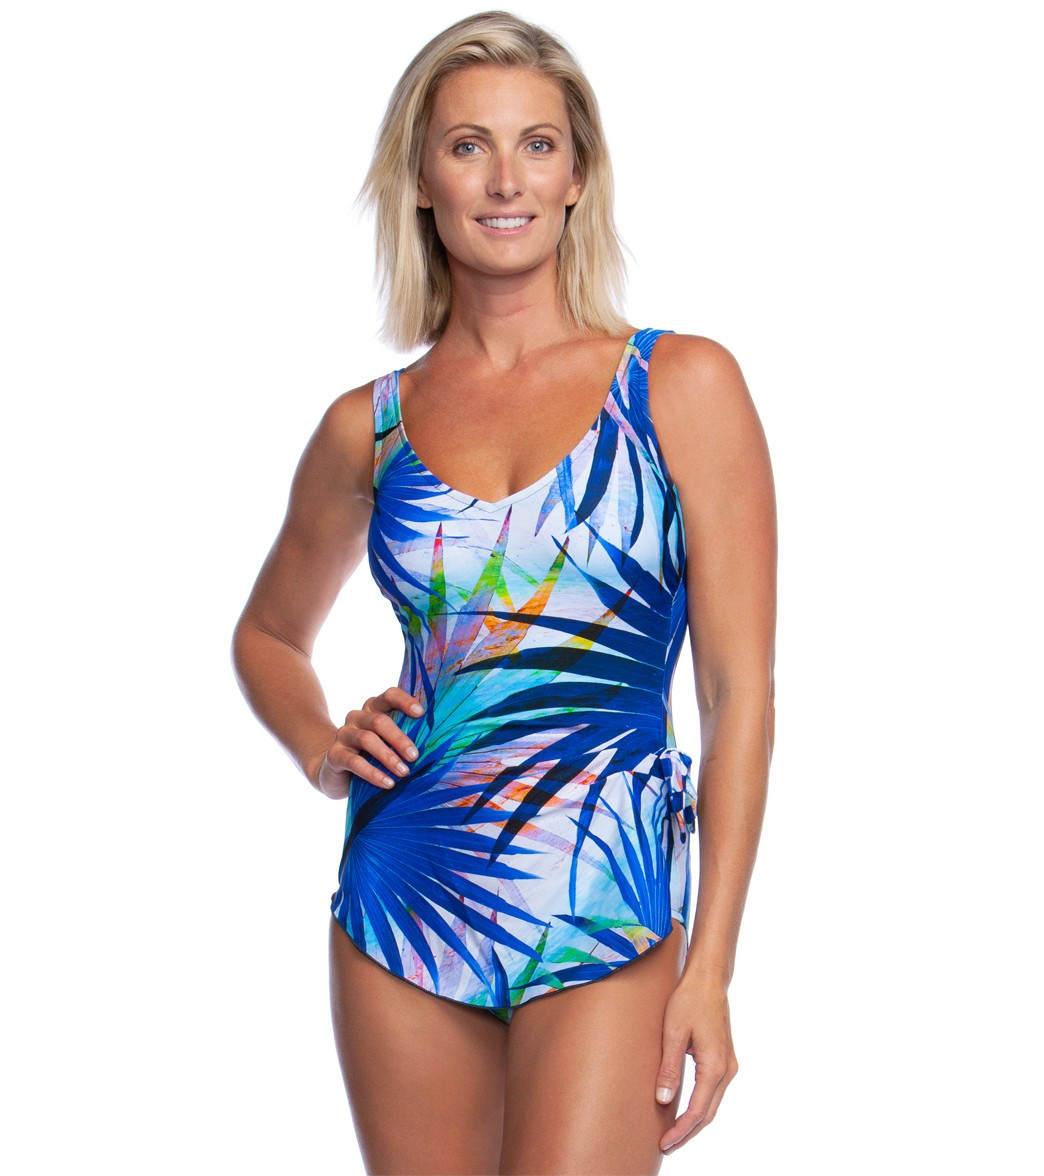 03add794bcb29 Maxine Palm Party Sarong One Piece Swimsuit at SwimOutlet.com - Free  Shipping